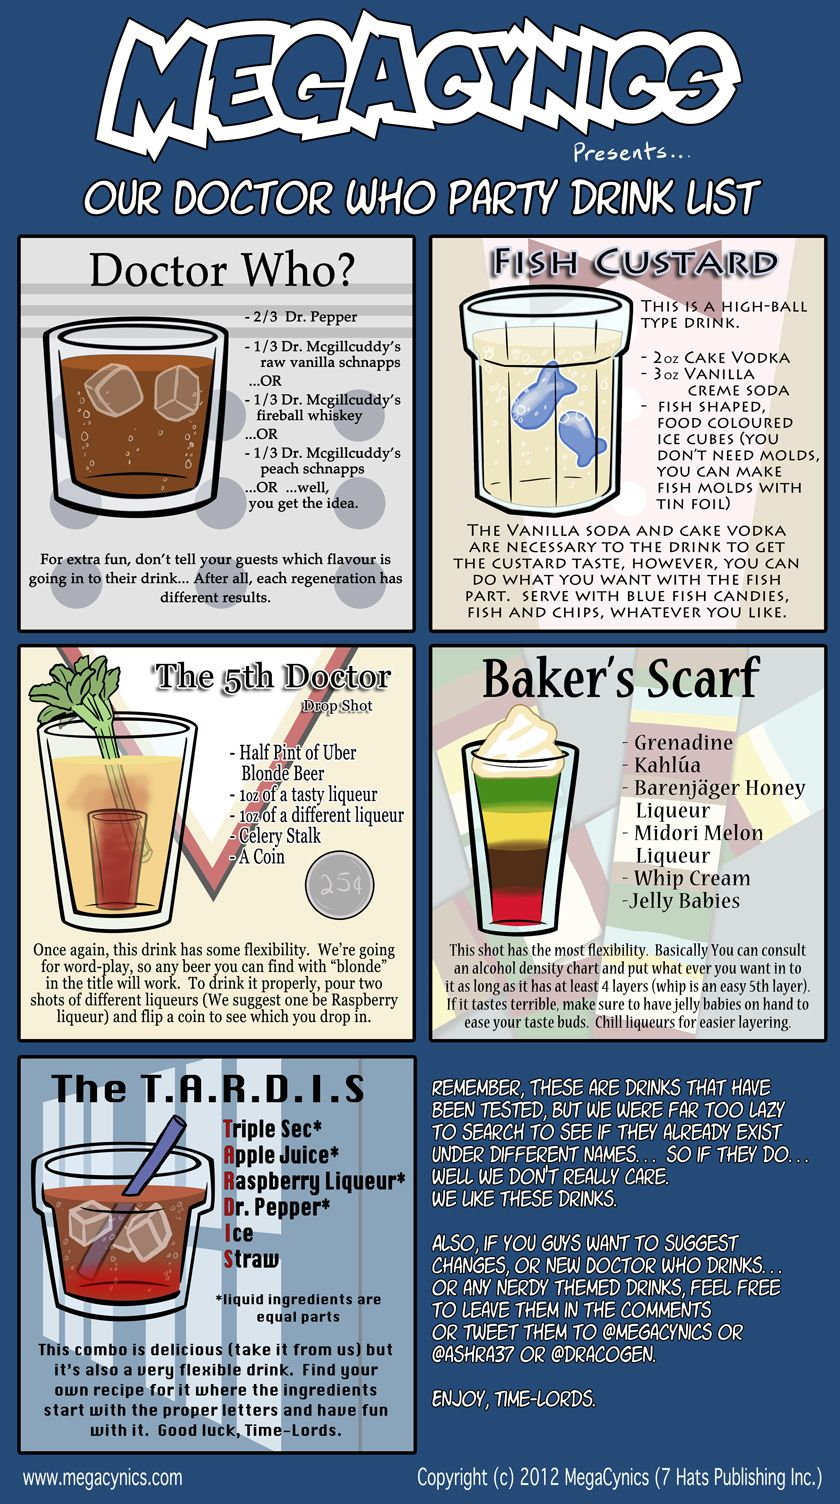 Megacynics Doctor Who Drink List Where S The Banana Daiquiri Always Take A Banana To A Party Rose Bananas Doctor Who Drinks Doctor Who Party Doctor Who